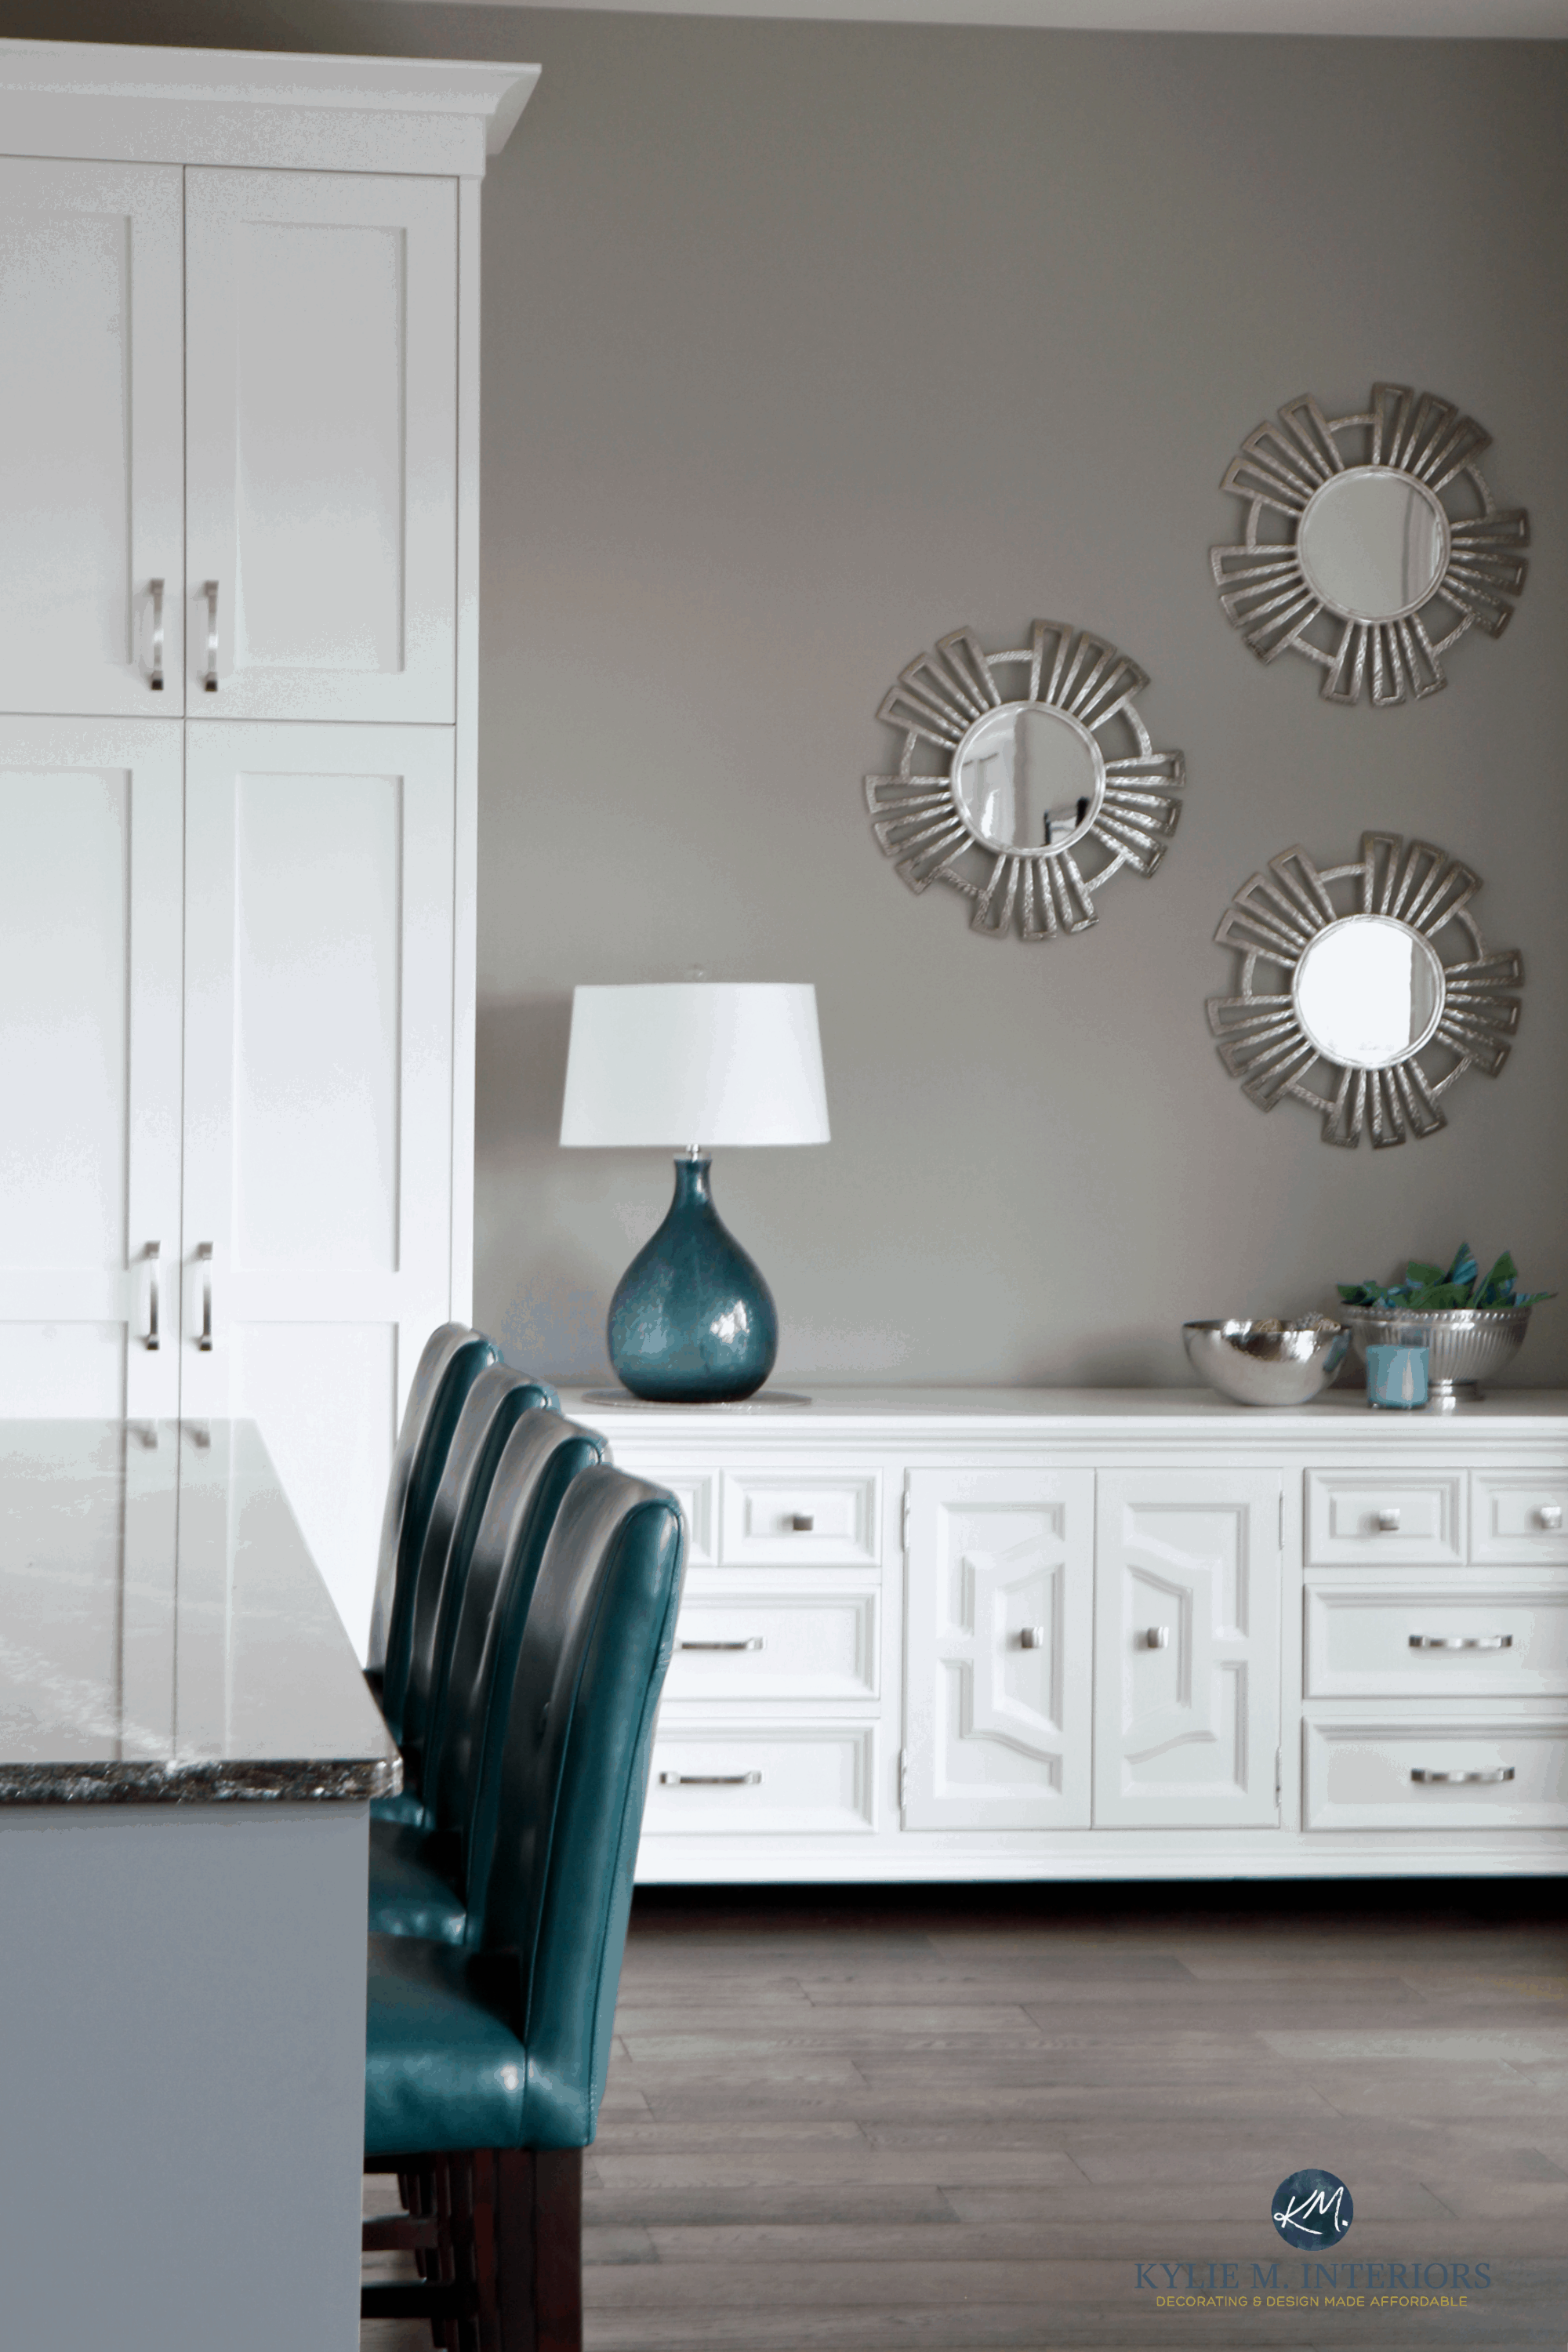 The Best Warm Gray or Greige Paint Colors For Your Home #indoorpaintcolors